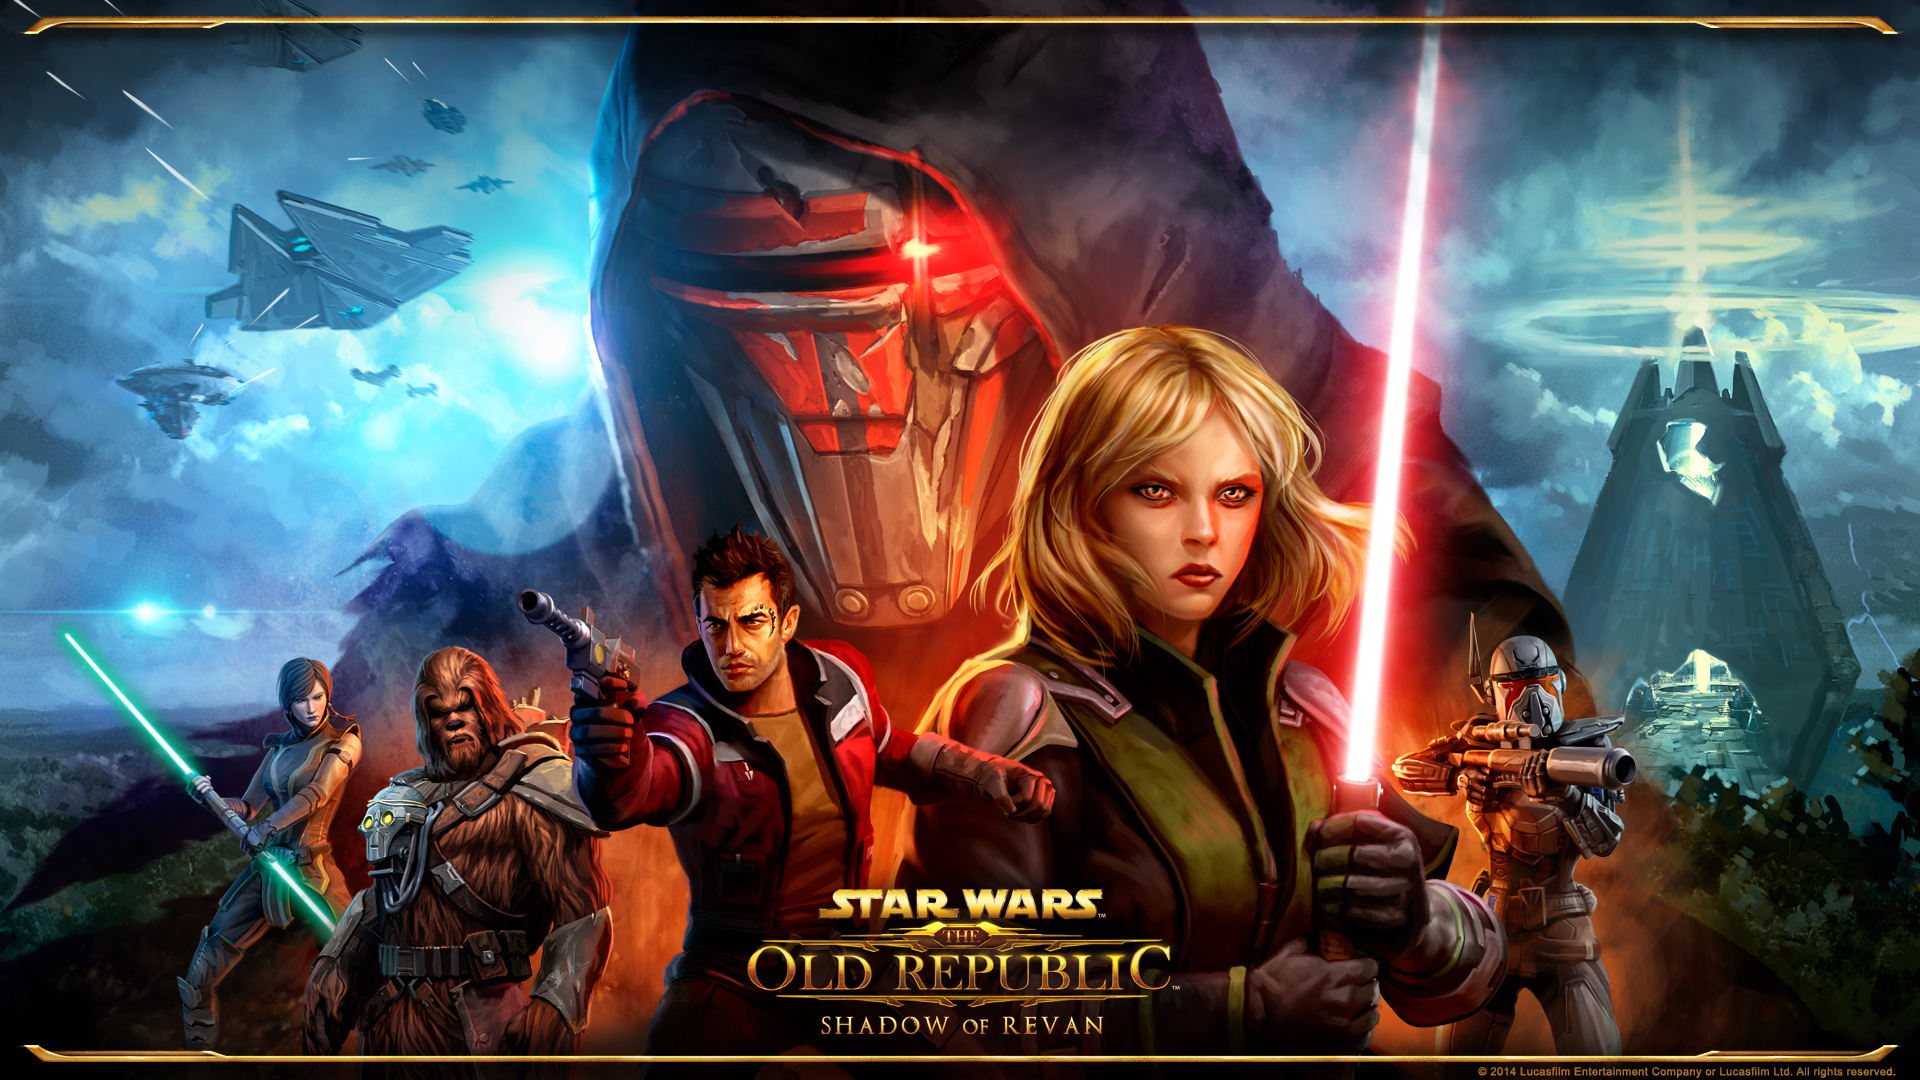 Star Wars The Old Republic Backgrounds